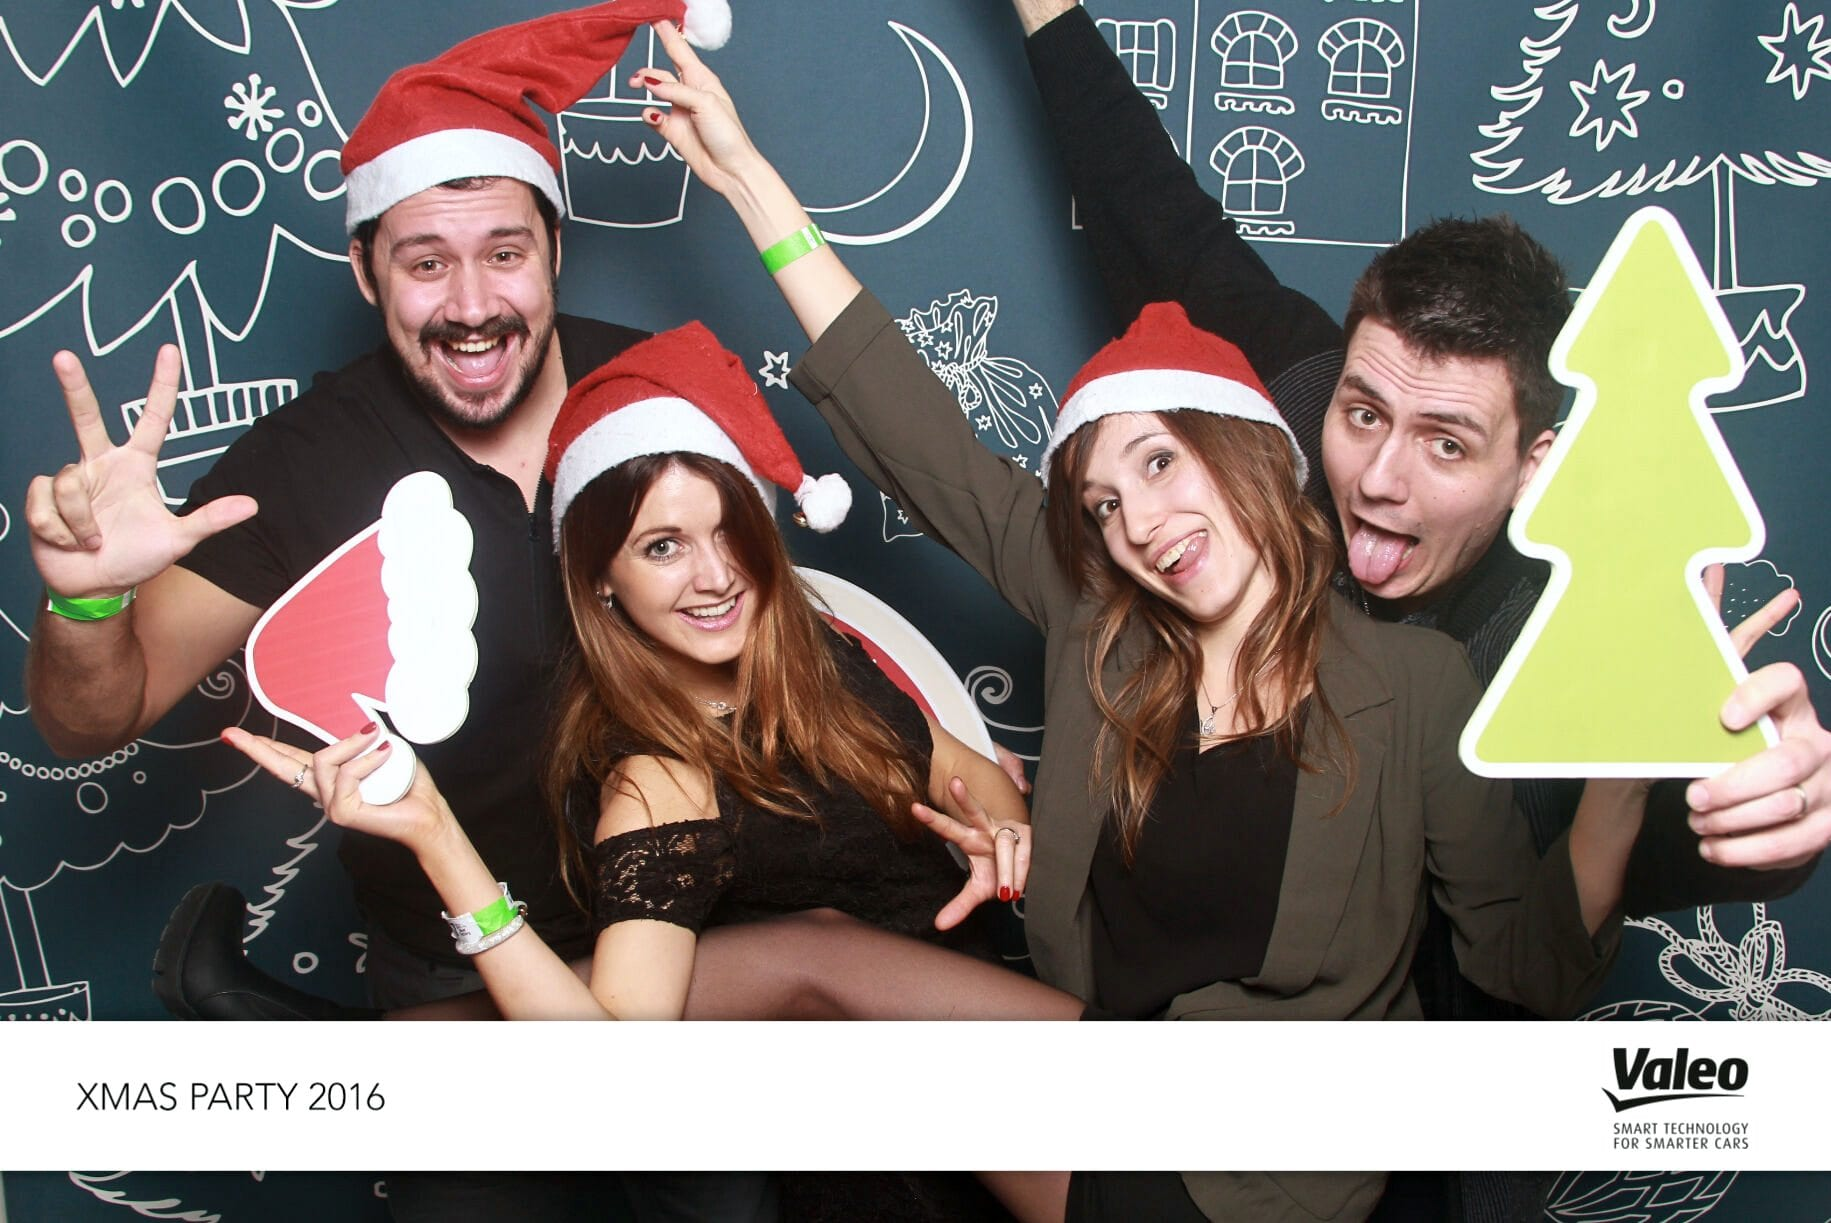 fotokoutek-valeo-xmas-party-2016-193277